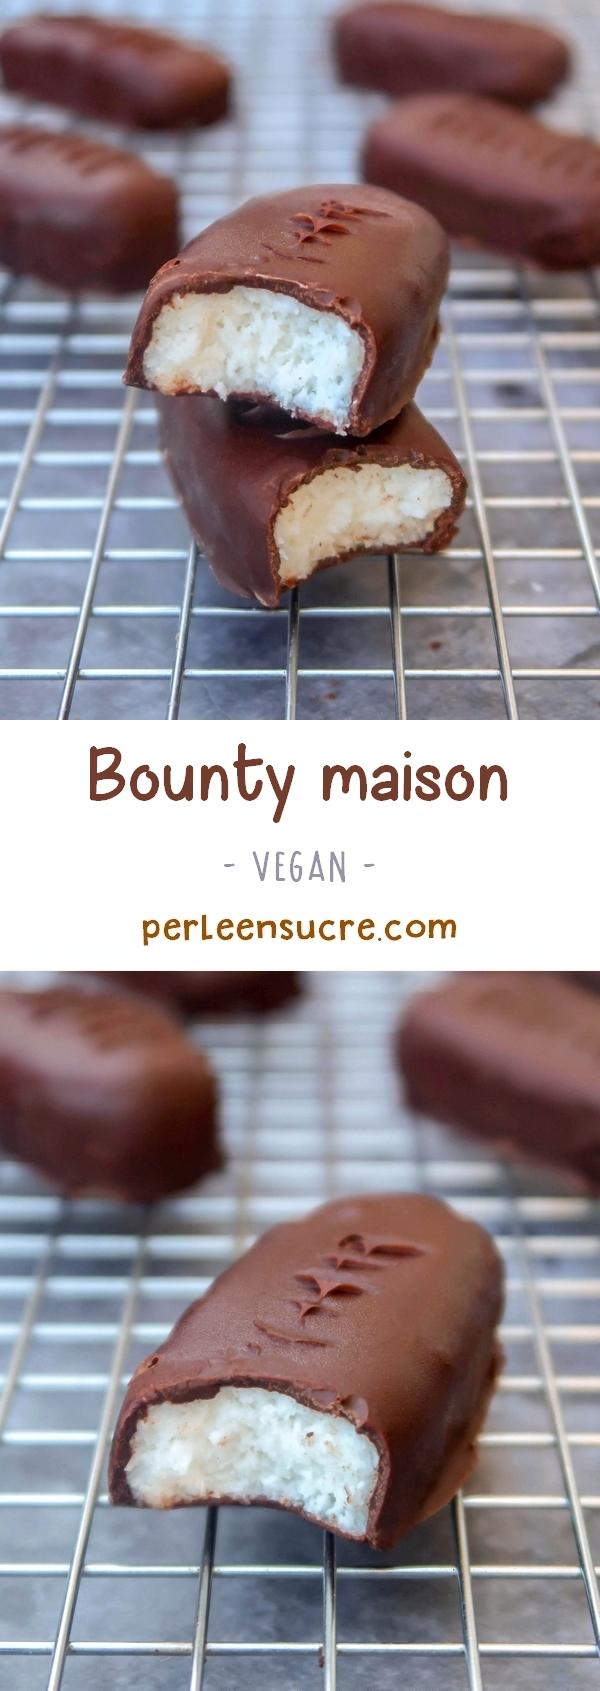 Bounty maison {vegan}